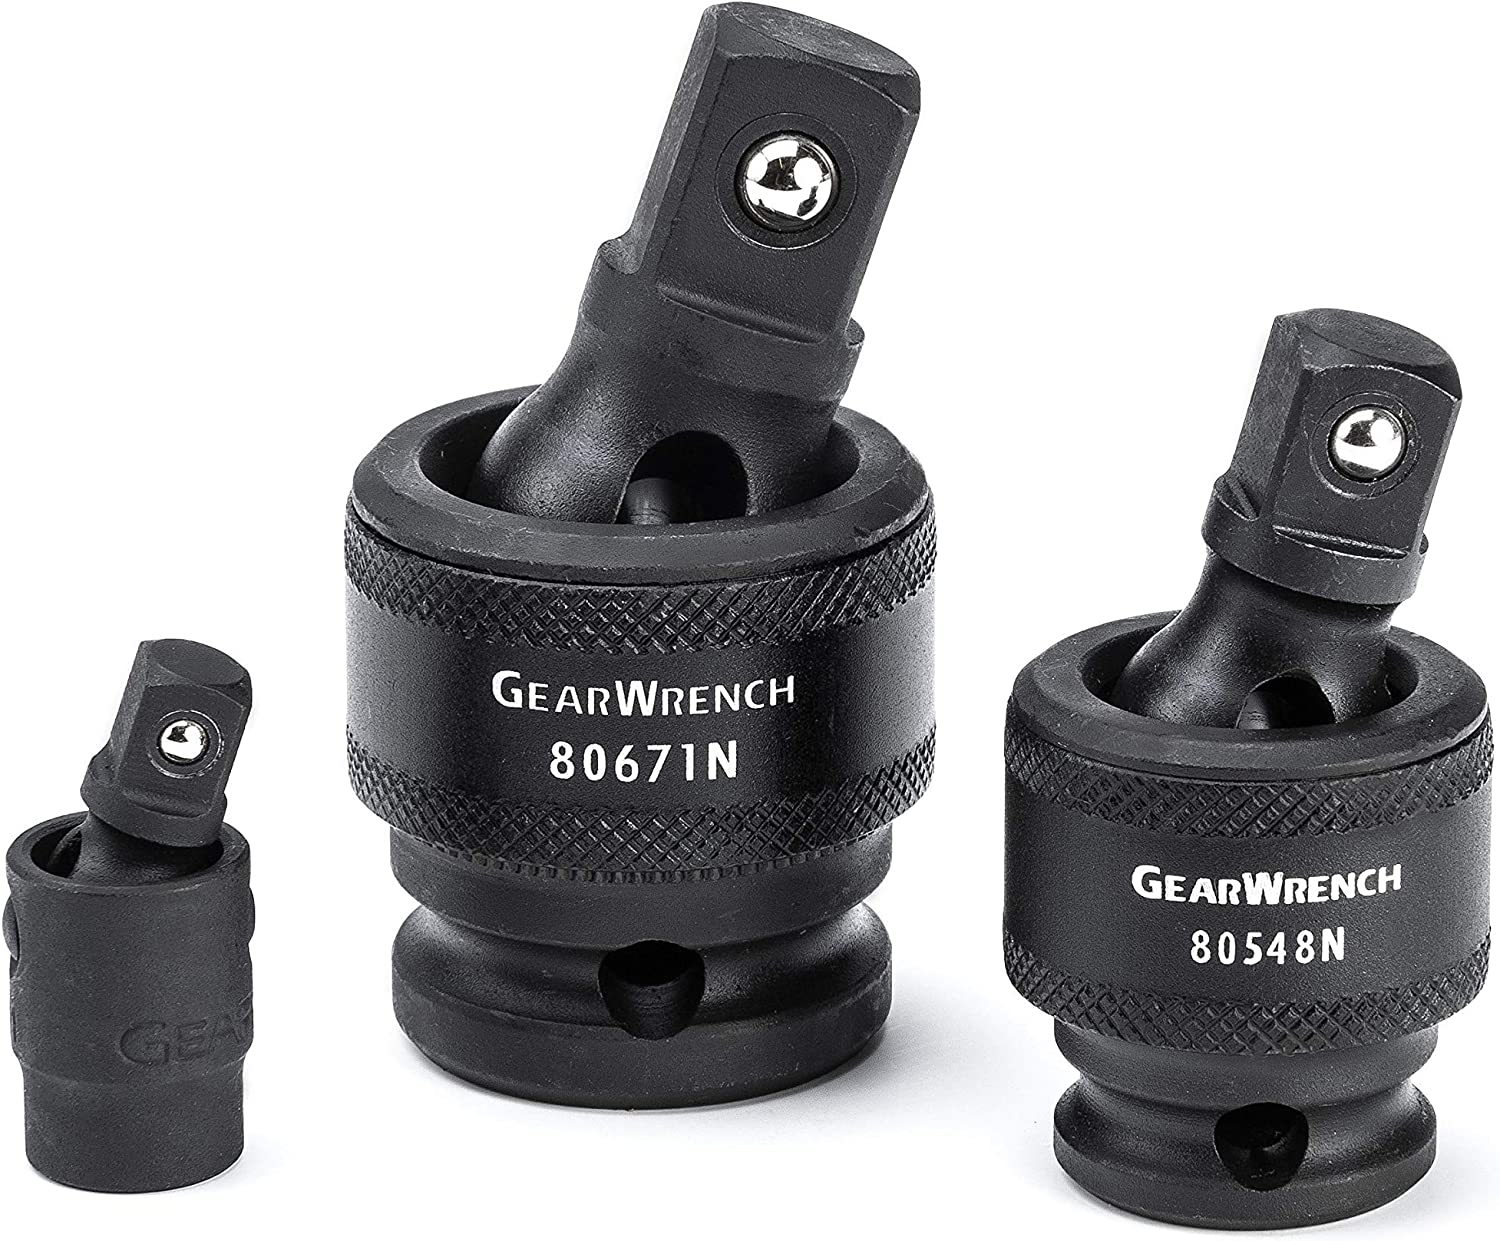 GEARWRENCH 3 PC. 1 4